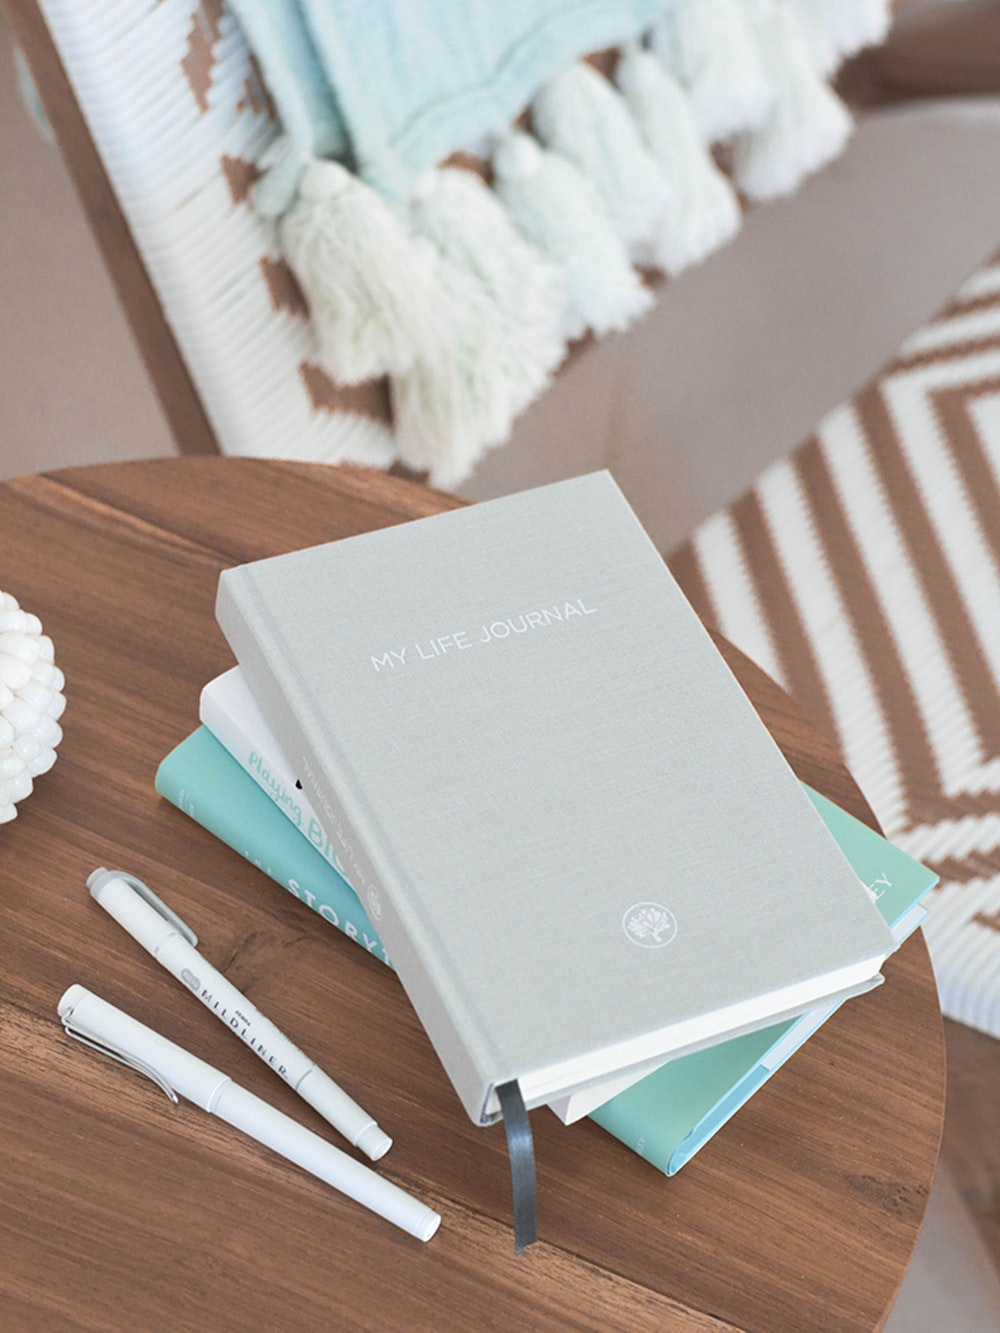 grey labeled book besidepens